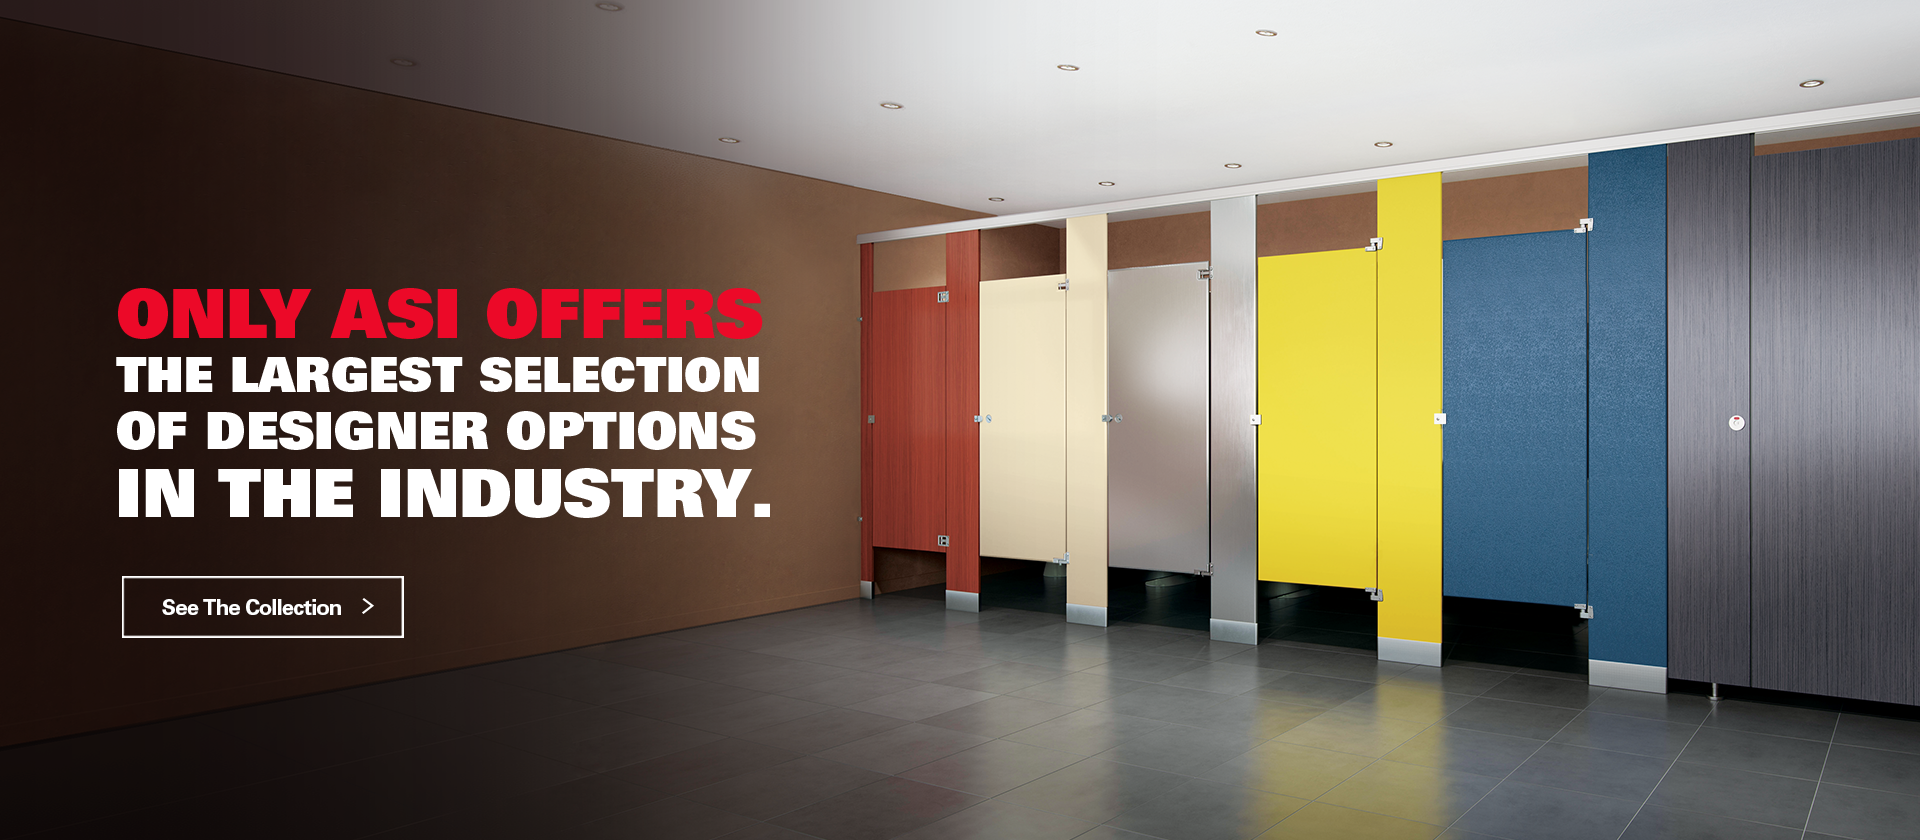 Only ASI Offers The Largest Selection Of Designer Options In The Industry